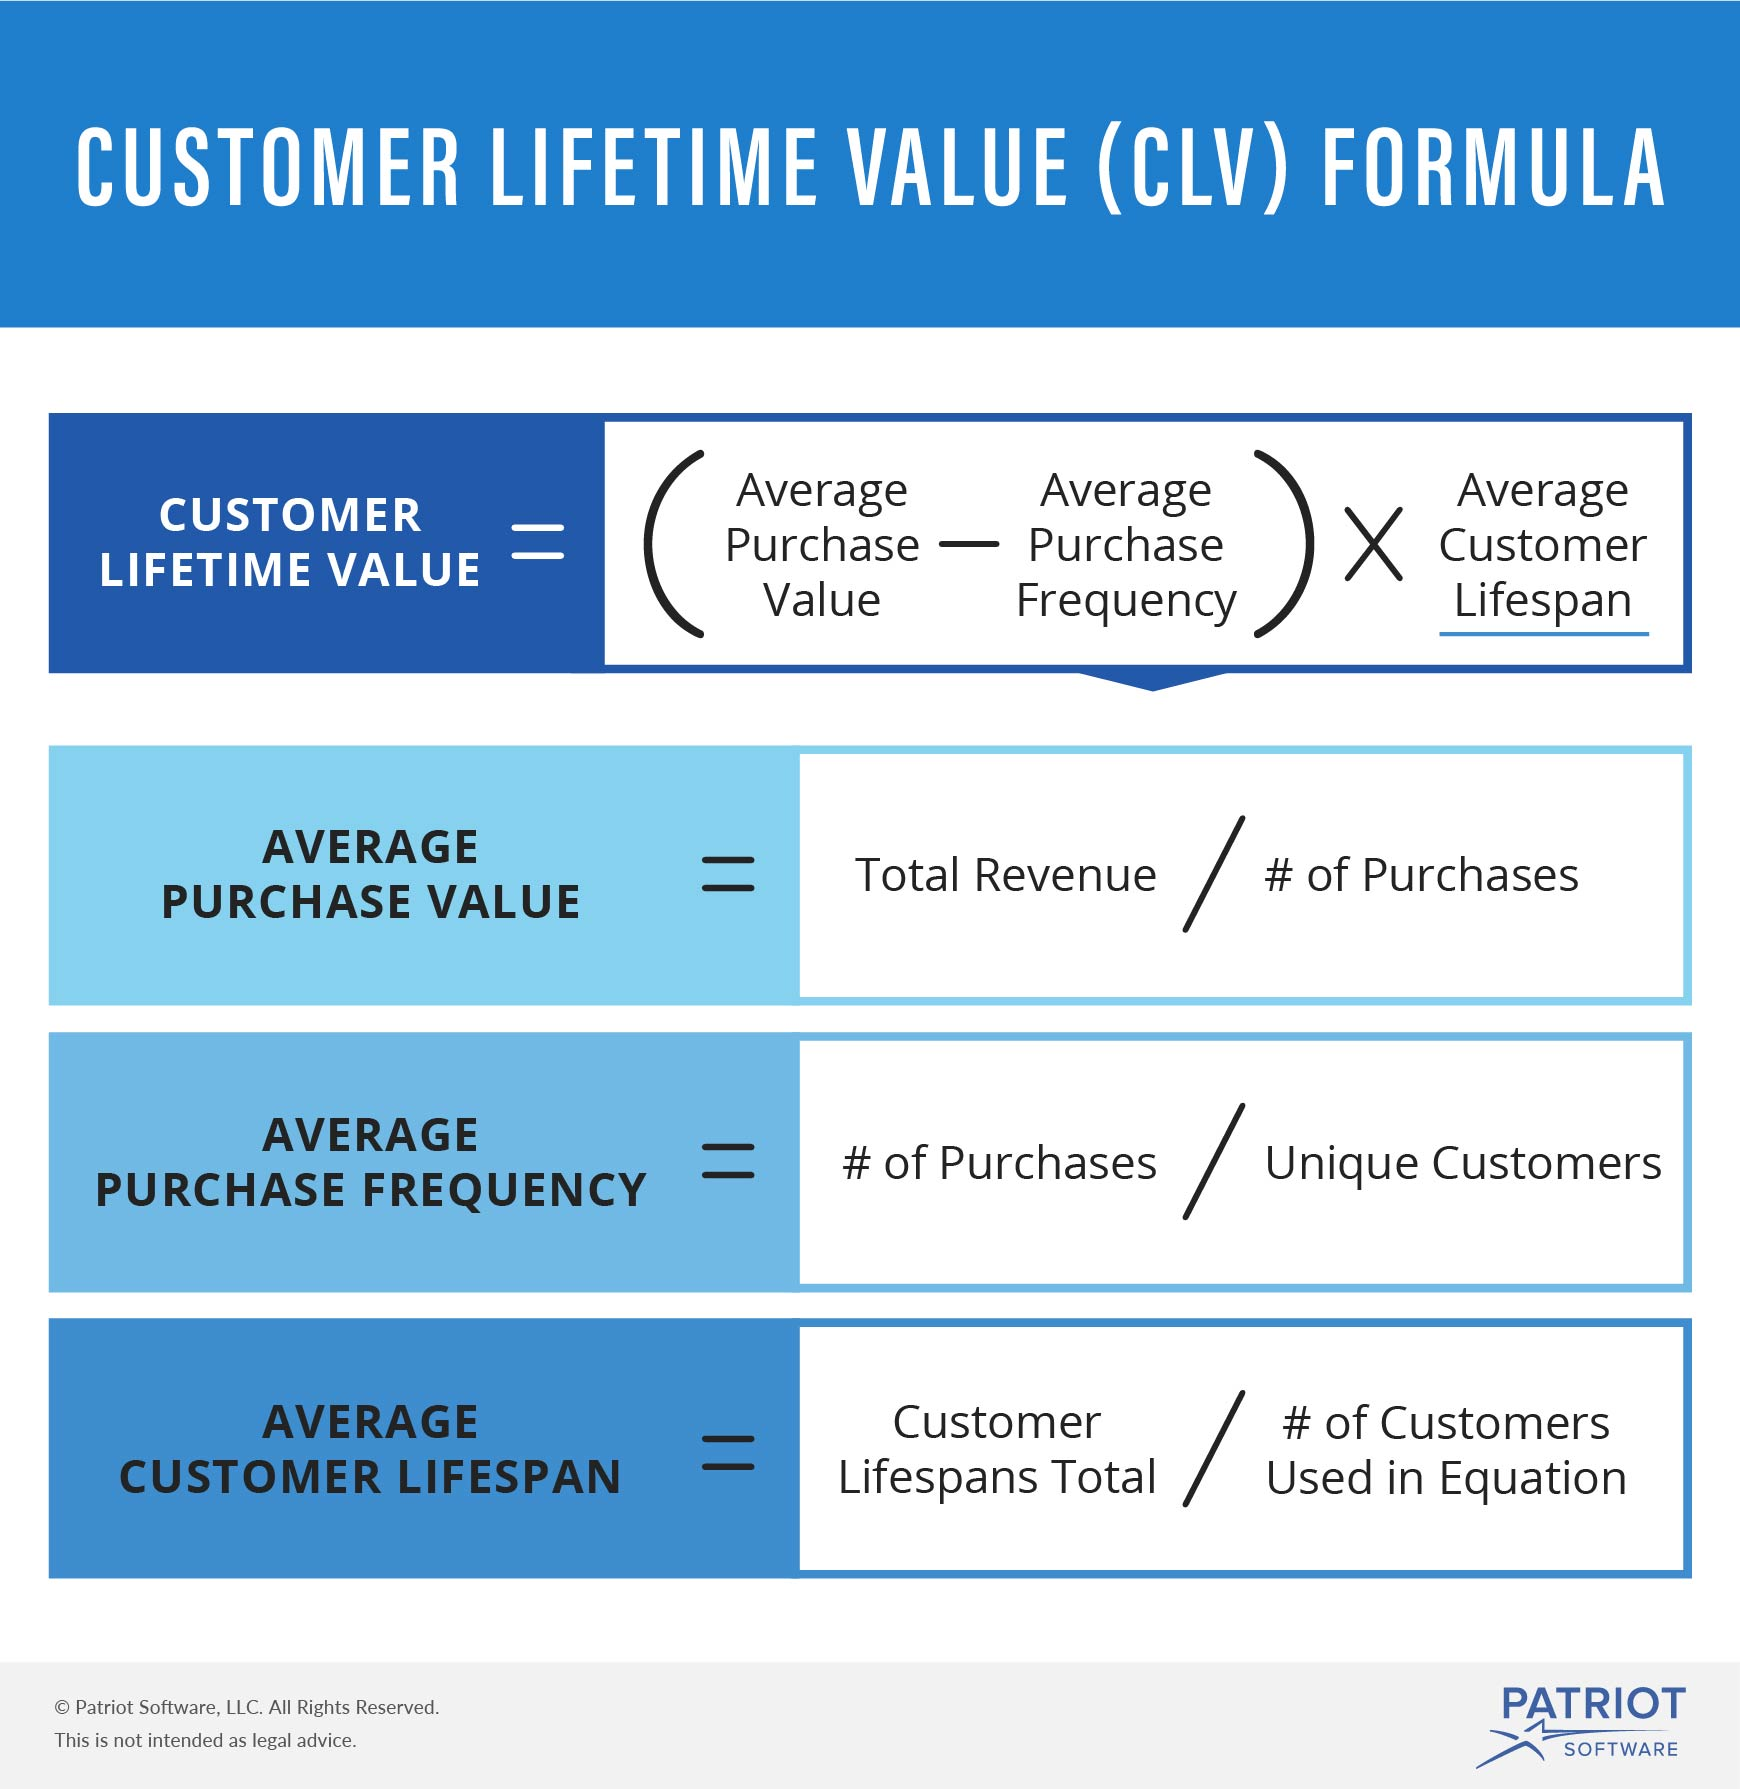 Customer Lifetime Value | Definition, Calculations, & Improvement Tips